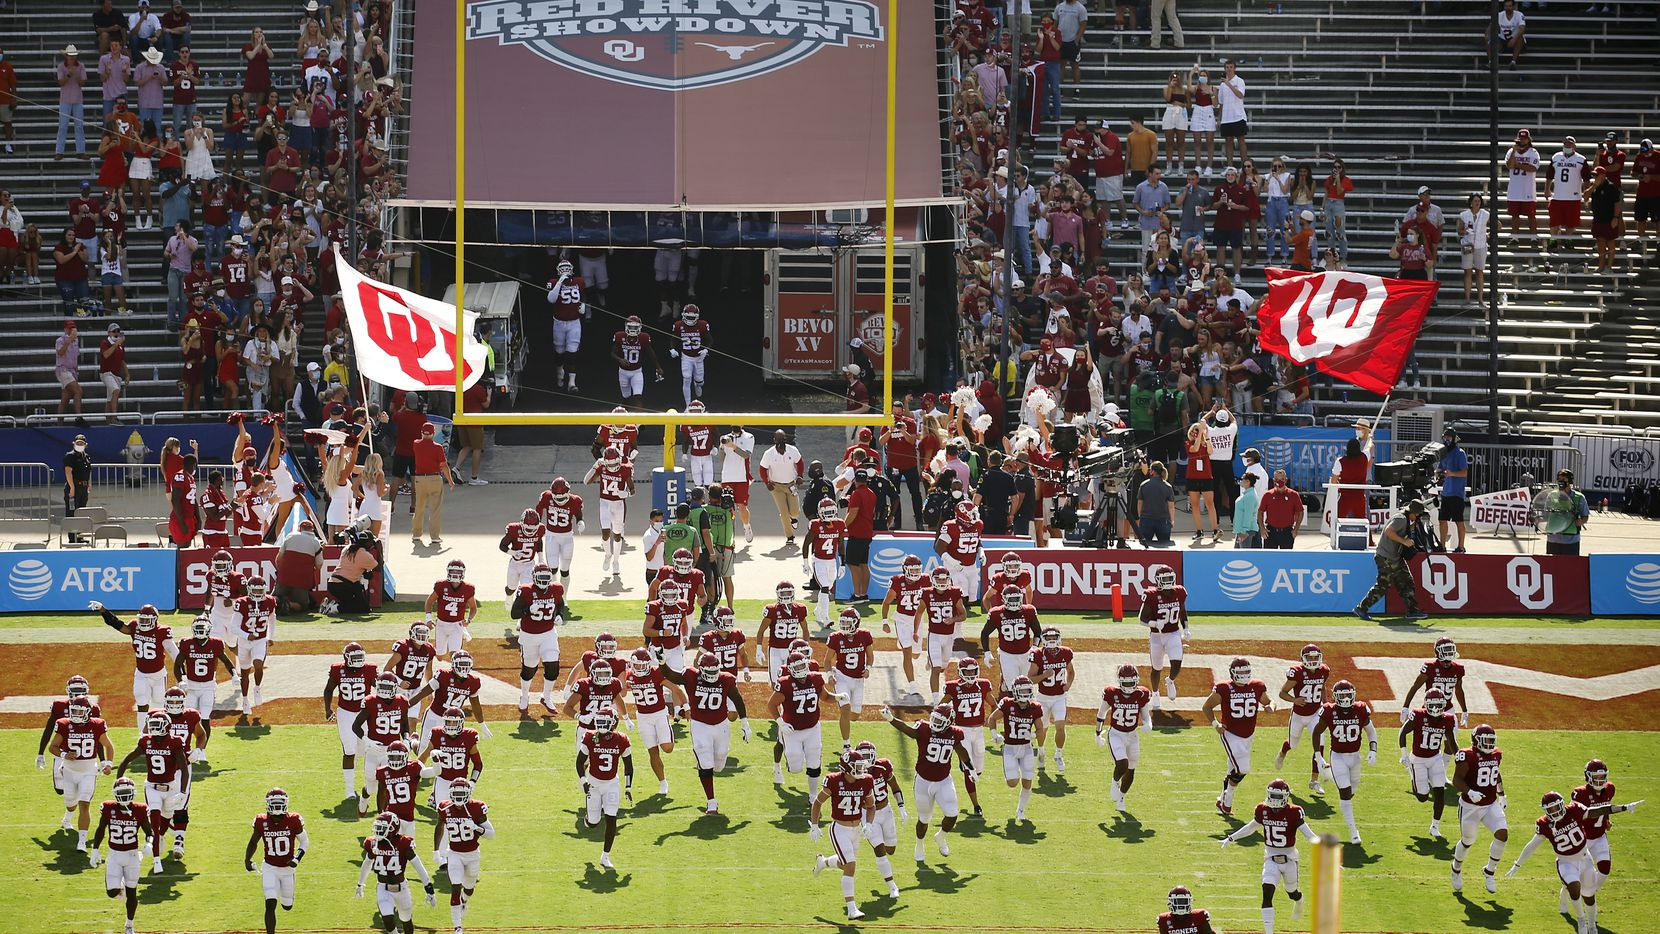 The Oklahoma Sooners football team takes the field to face the Texas Longhorns in the Red River Rivalry at the Cotton Bowl in Dallas, Saturday, October 10, 2020. Oklahoma won in quadruple overtime, 53-45.